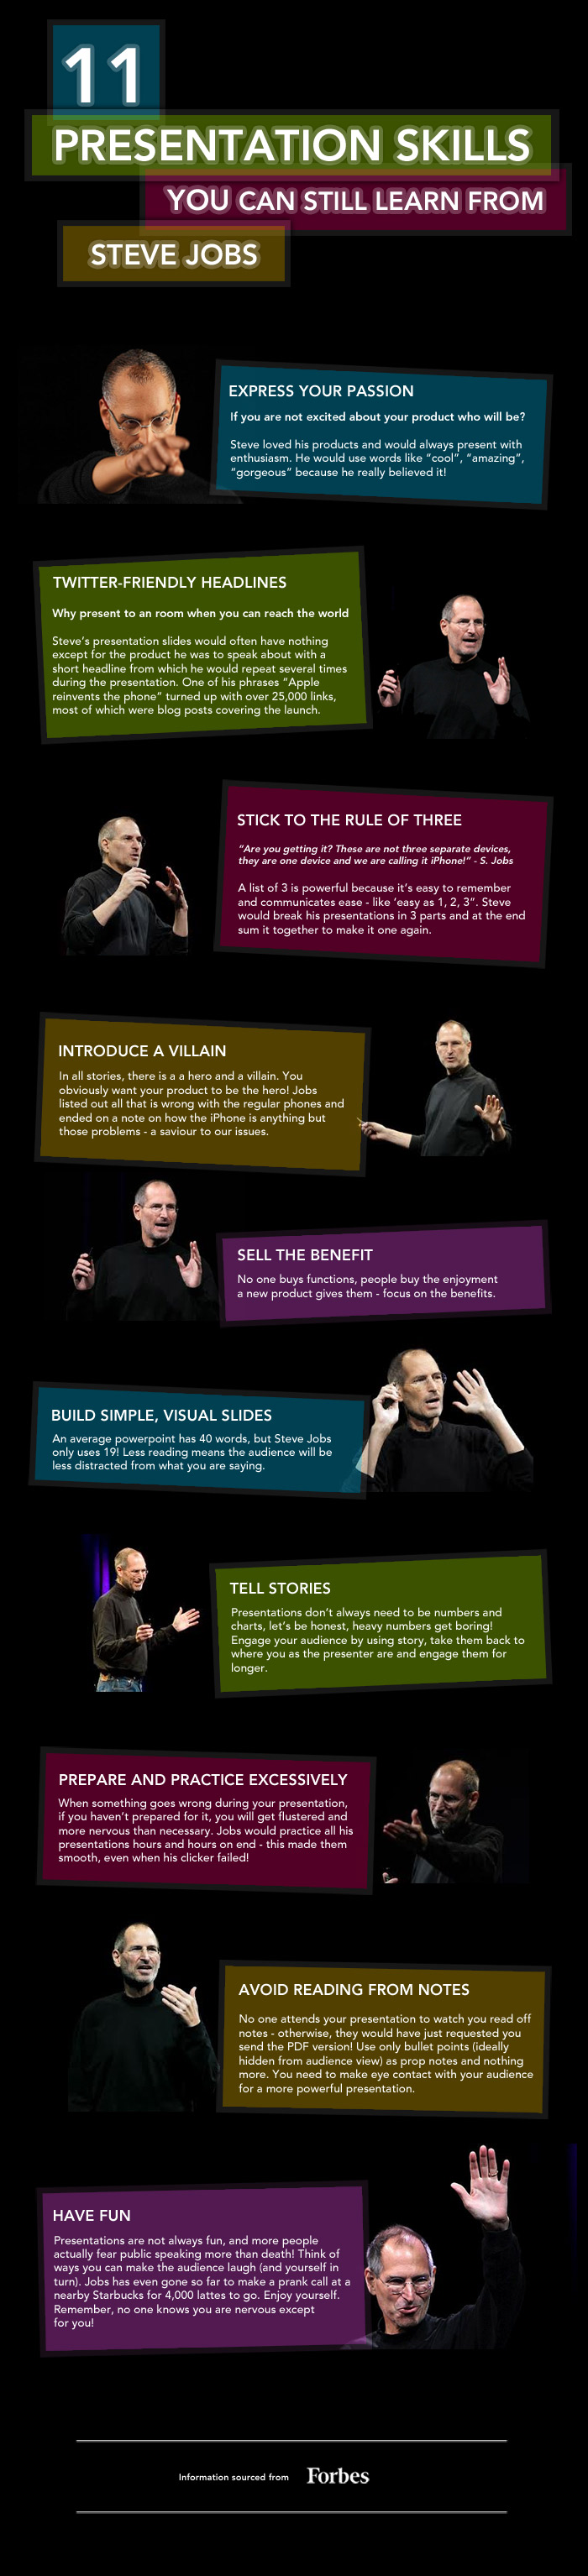 Presentation Skills from Steve Jobs